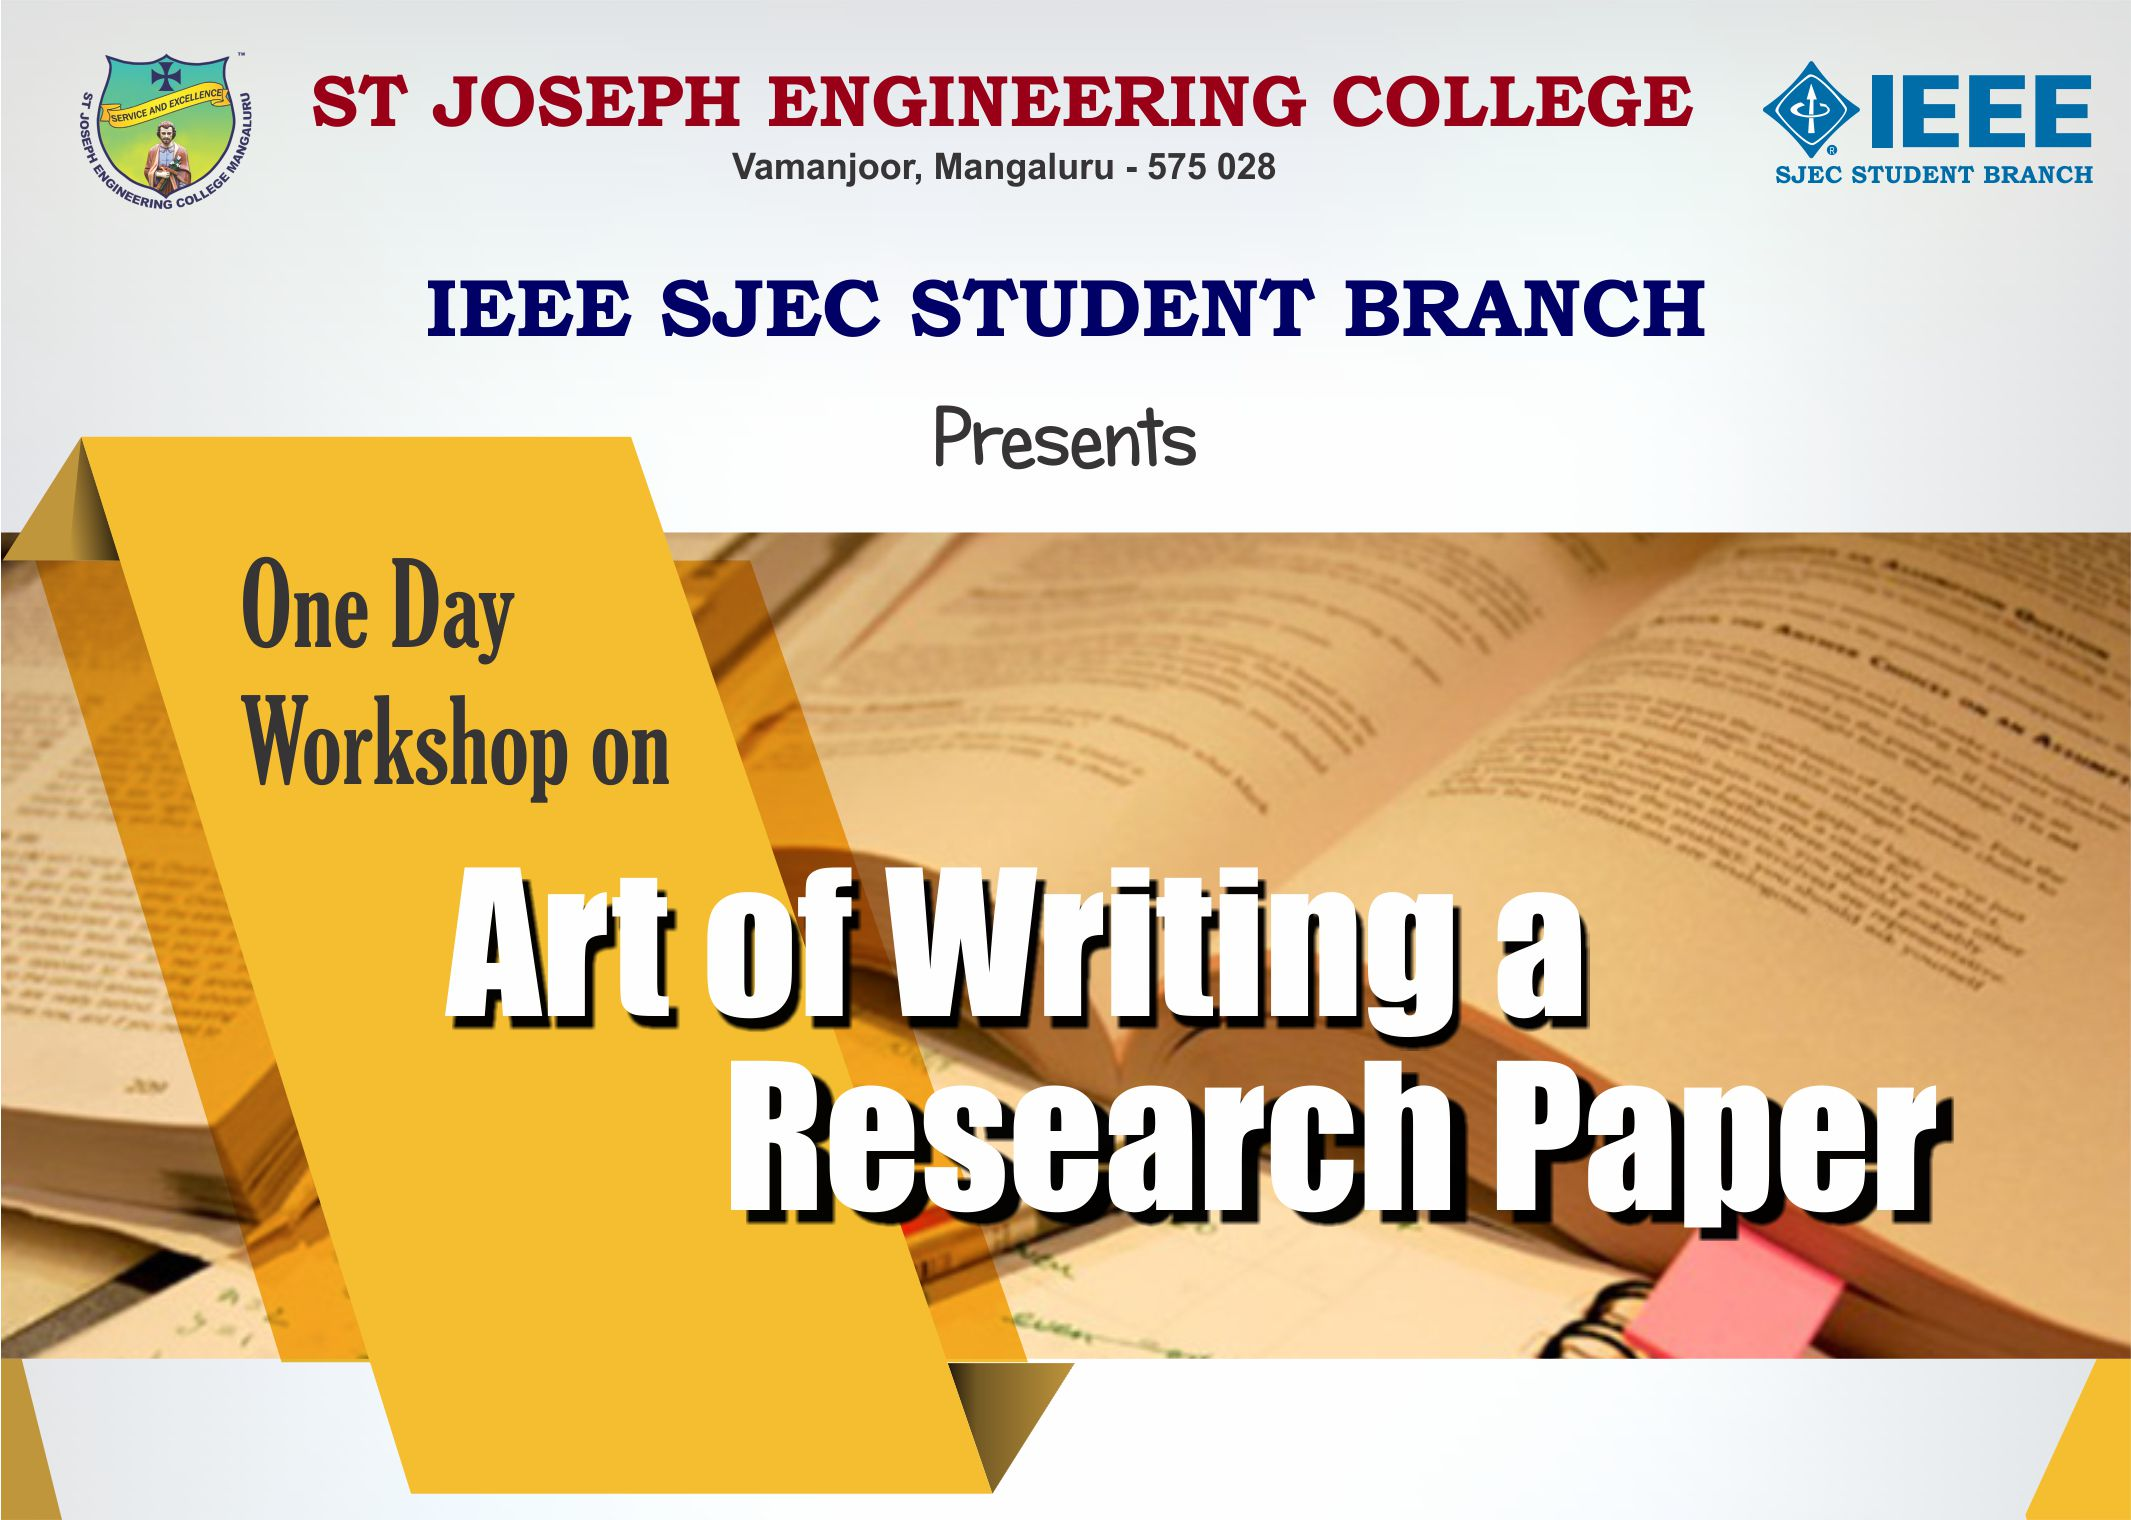 009 Workshop Banner Writing Researchs Magnificent A Research Papers Tips For Paper Introduction How To Write Pdf Steps In Full